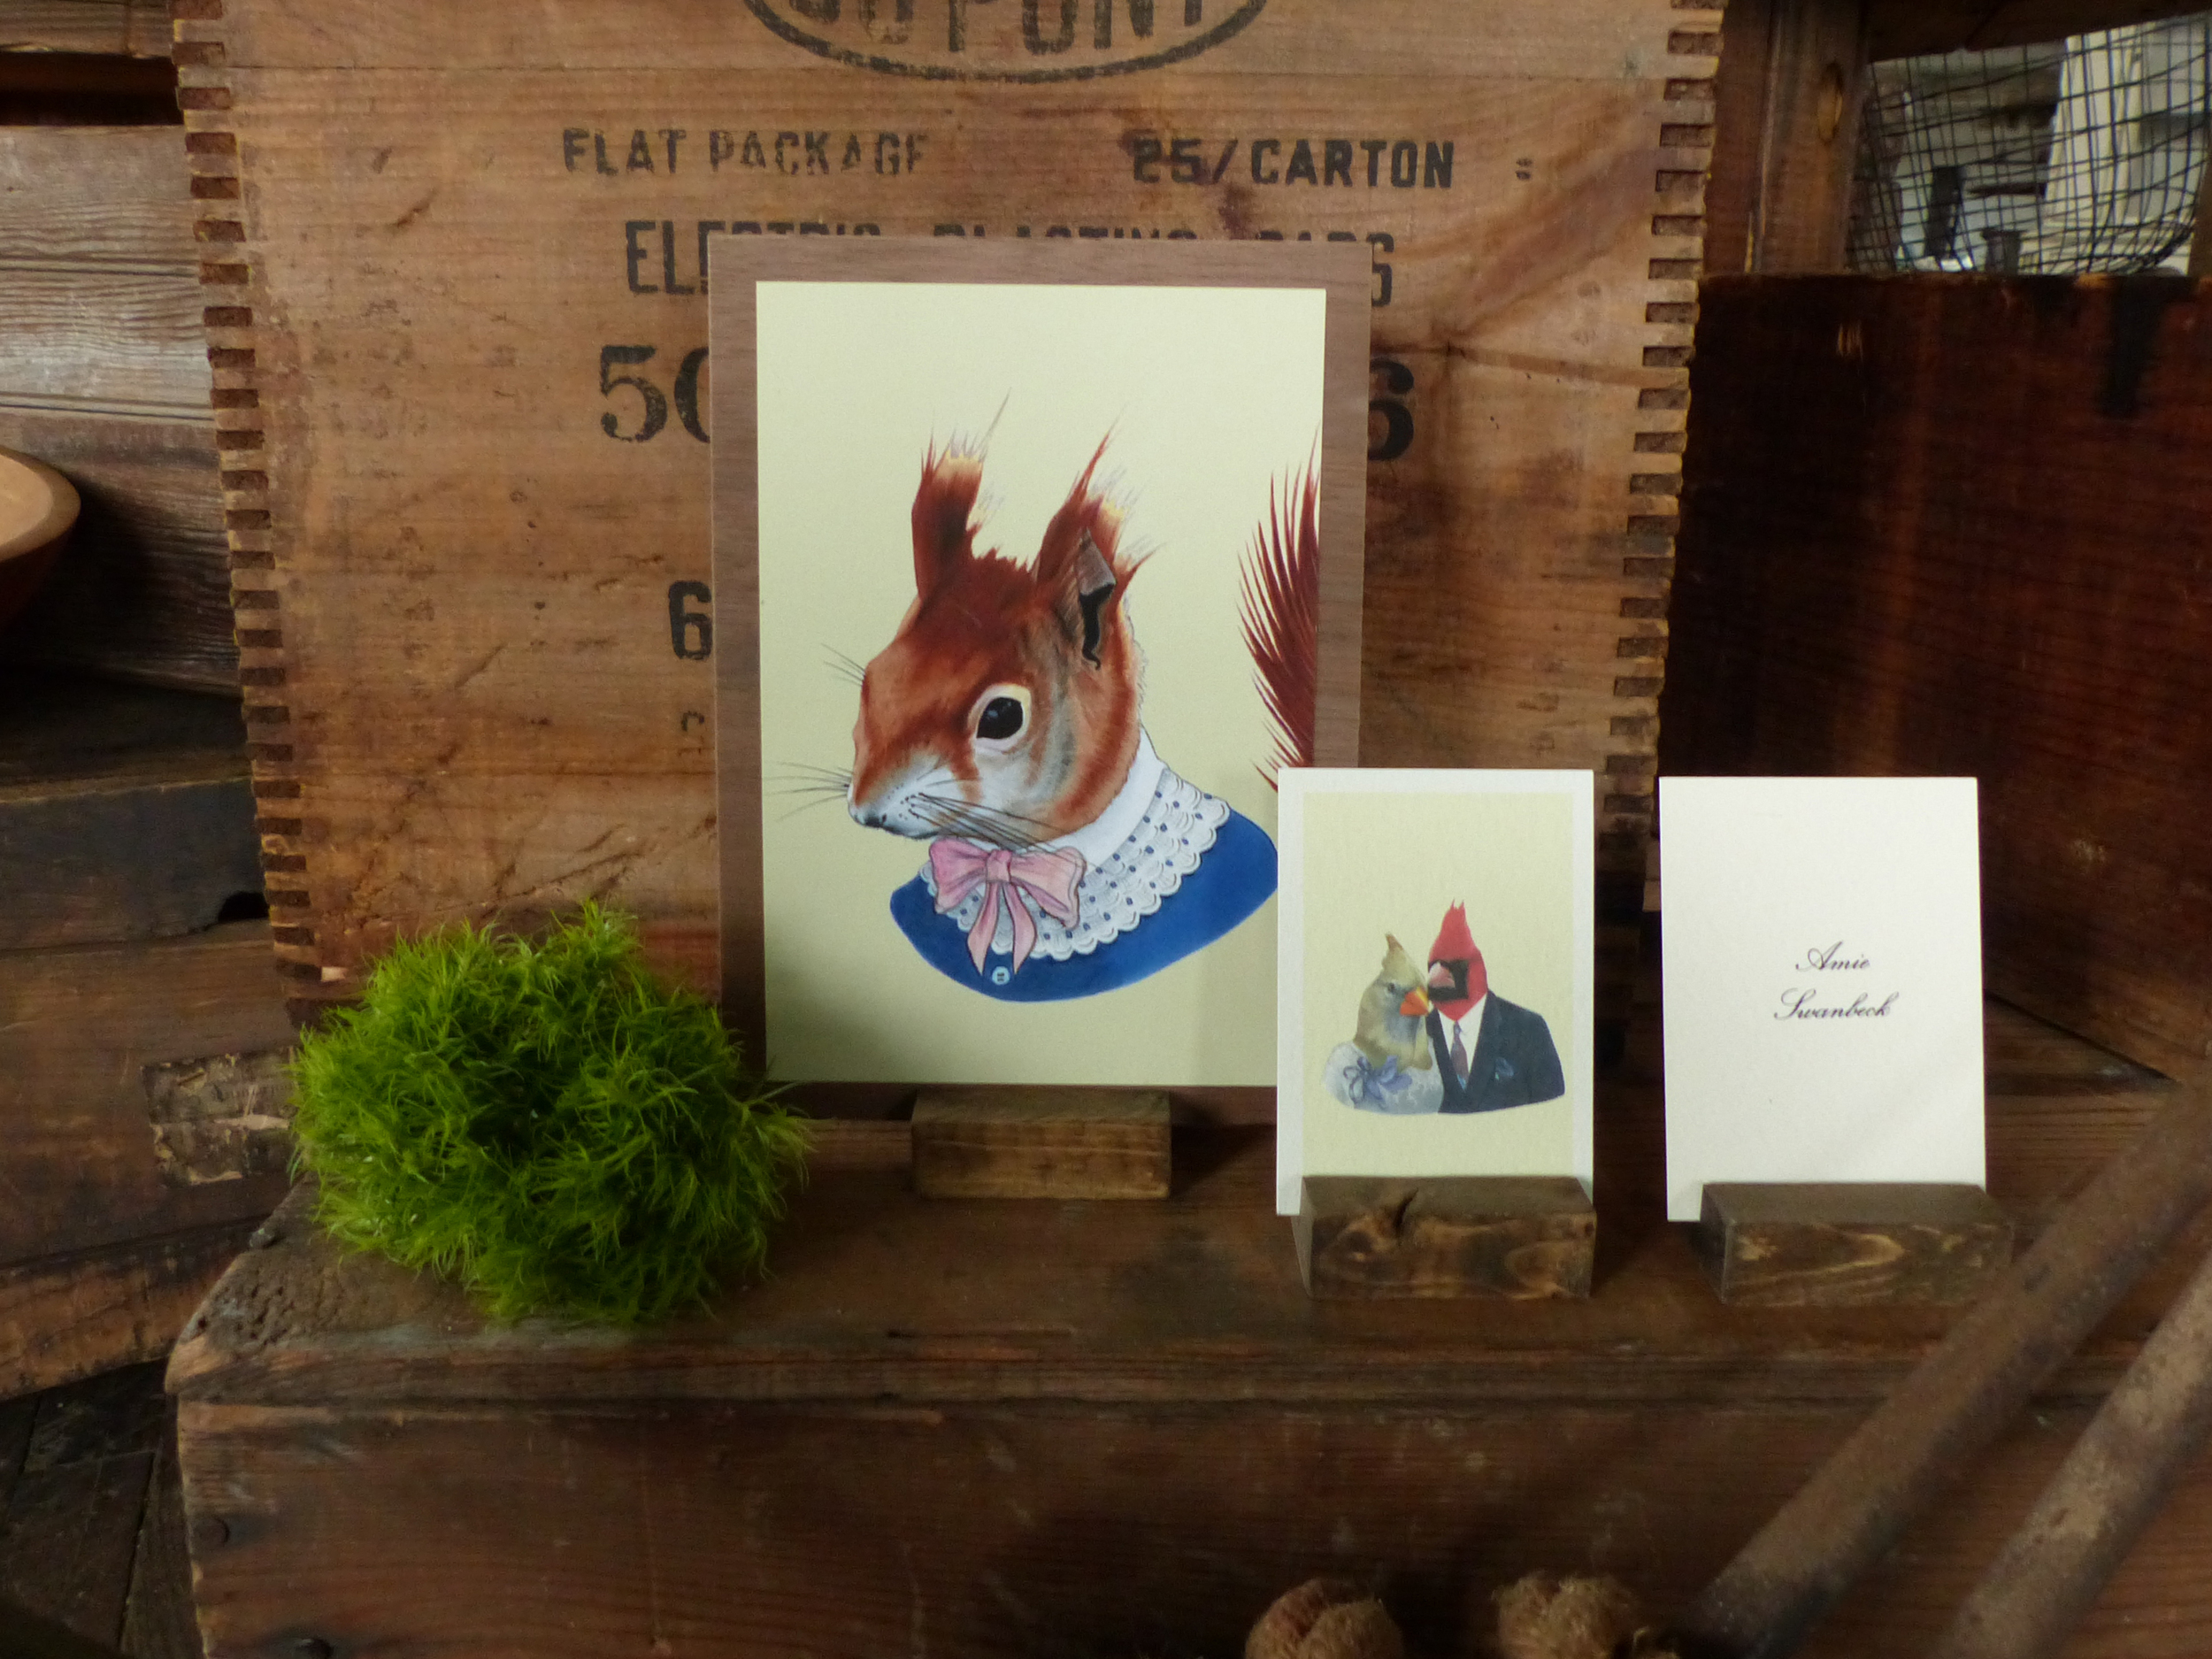 Each table used a picture cue of an illustration of a woodland creature dressed in formal wear.